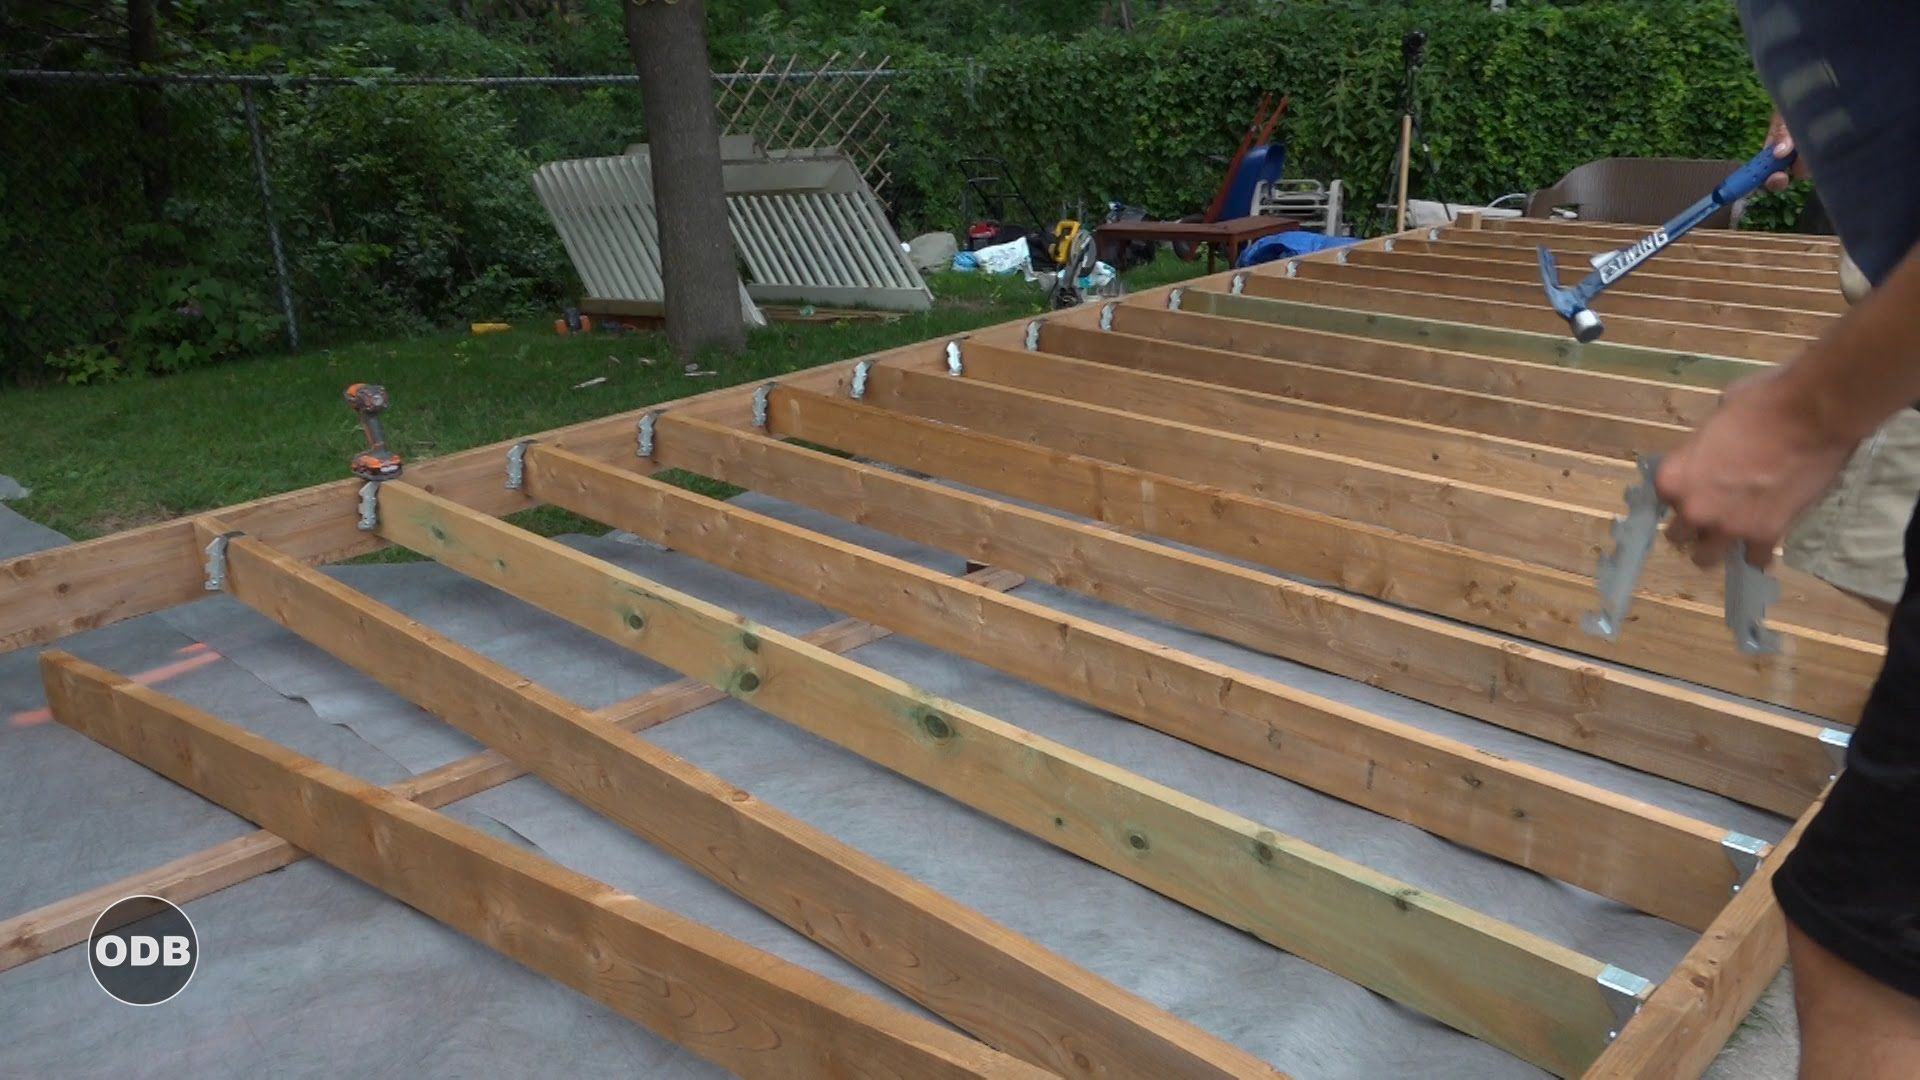 How To Build A Deck Part 3 Ground Level Deck Youtube How To Level Ground Ground Level Deck Ground Level Deck Plans